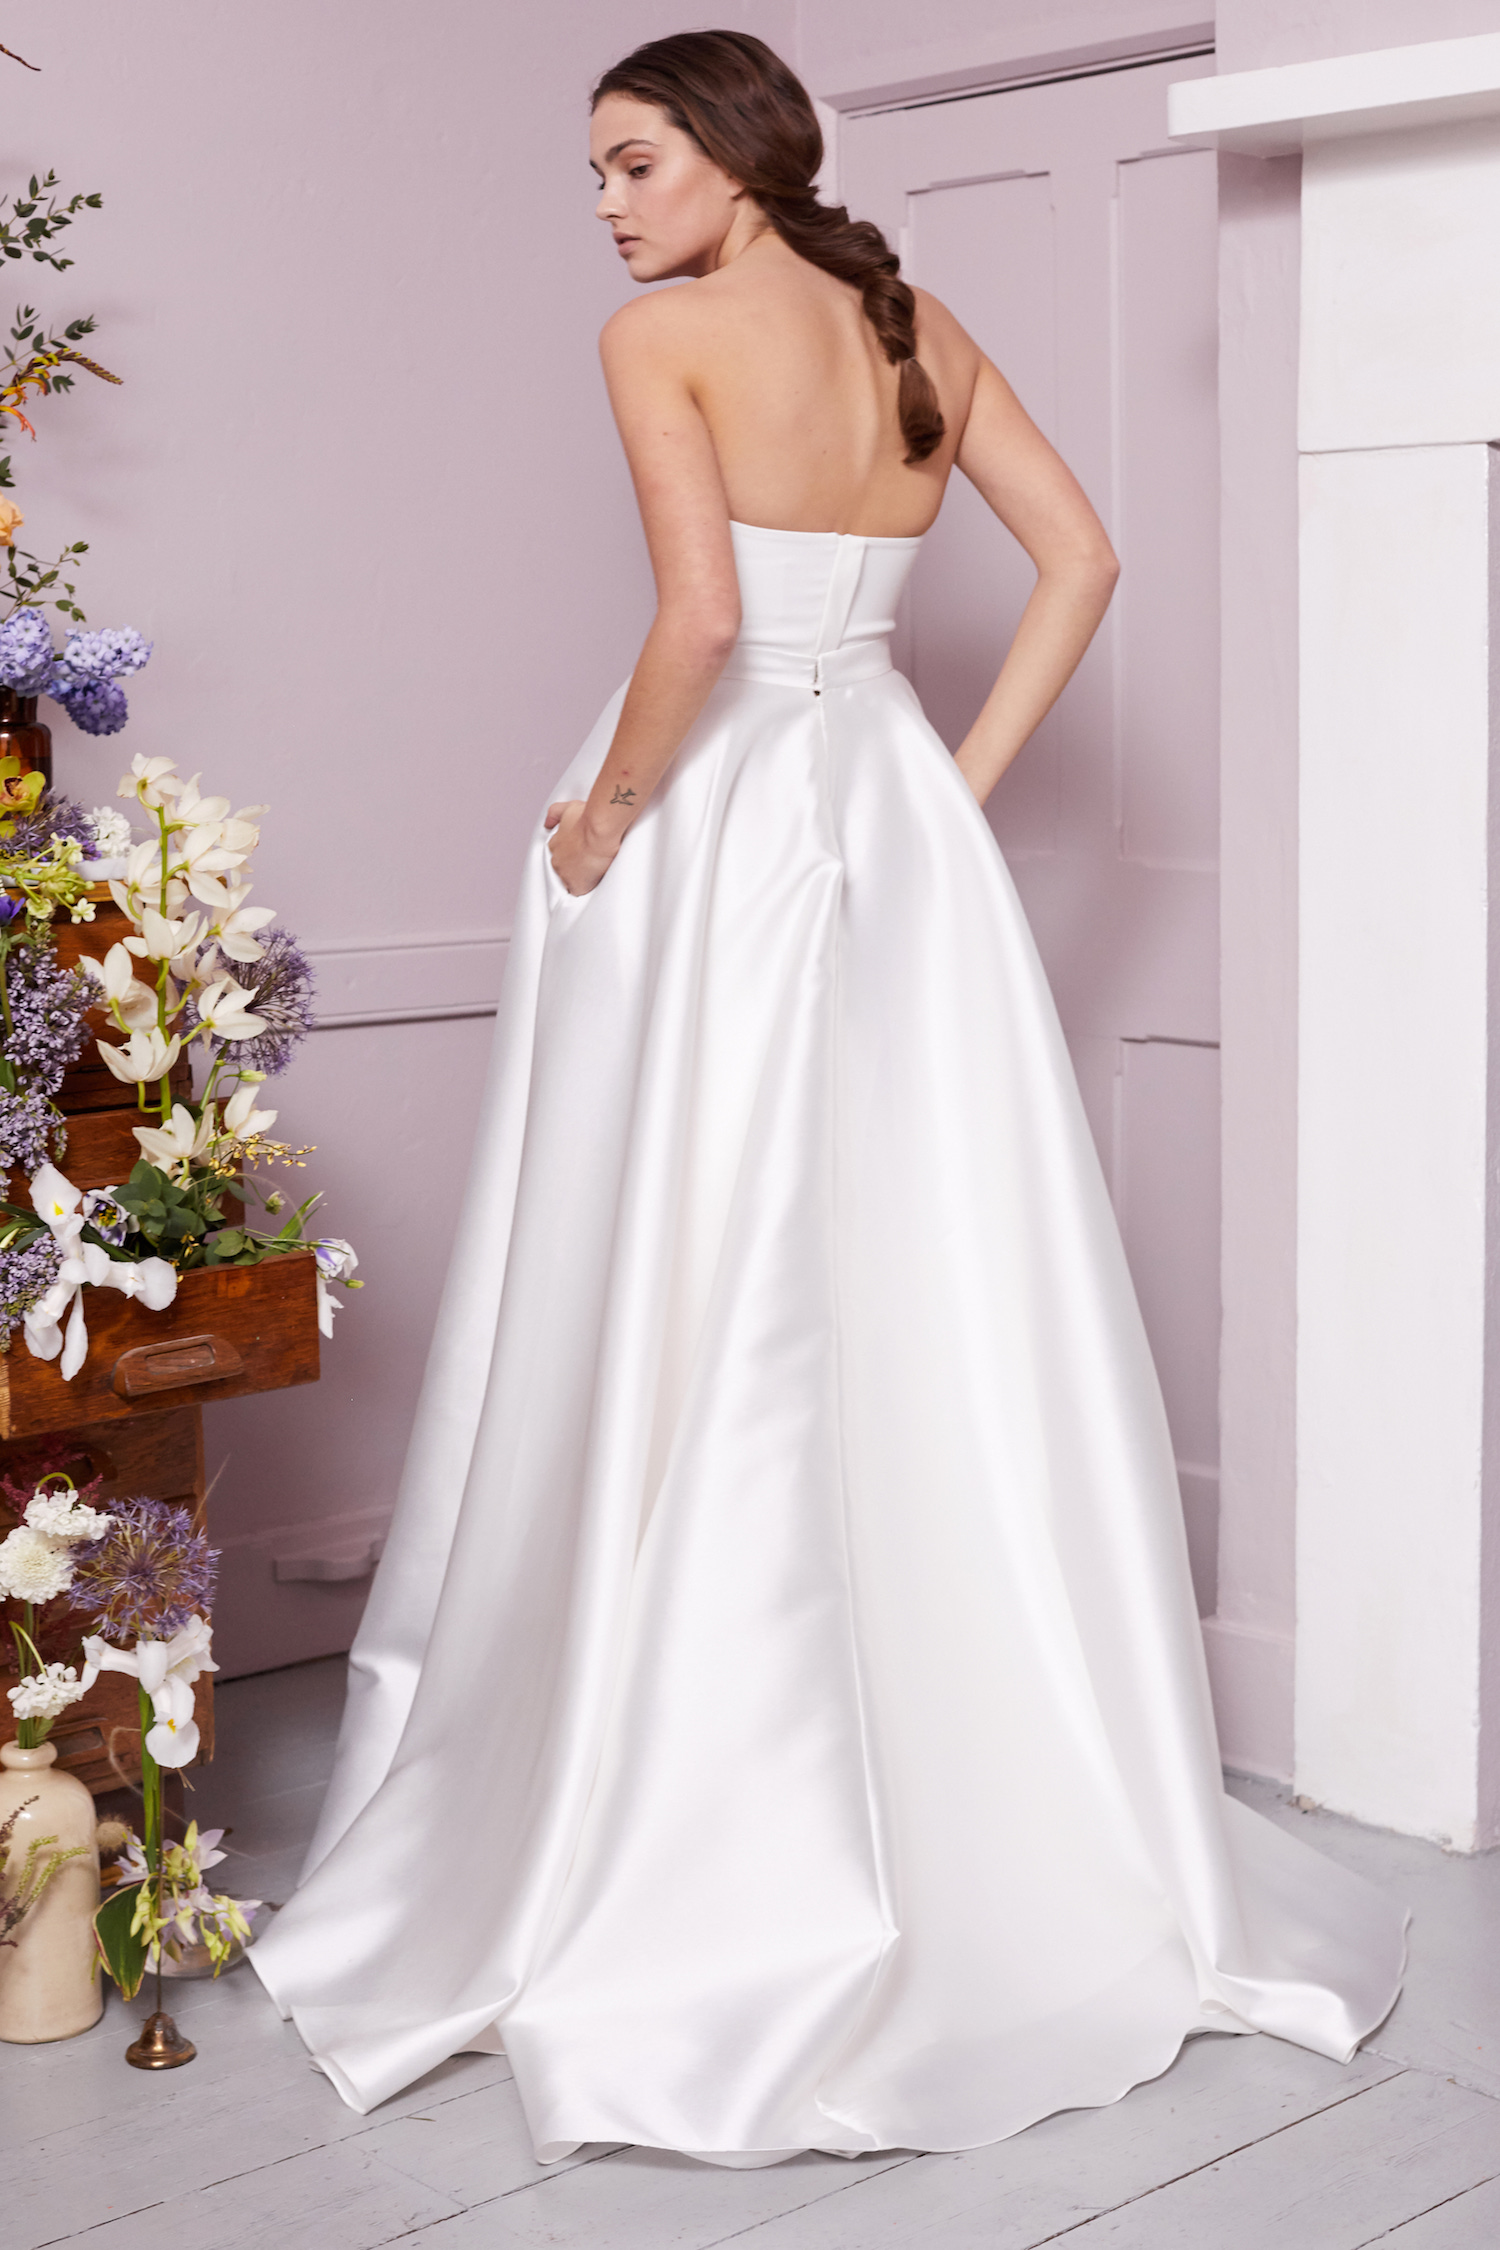 OLIVER CORSET & ELLIE HIGH LOW SKIRT | WEDDING DRESS BY HALFPENNY LONDON